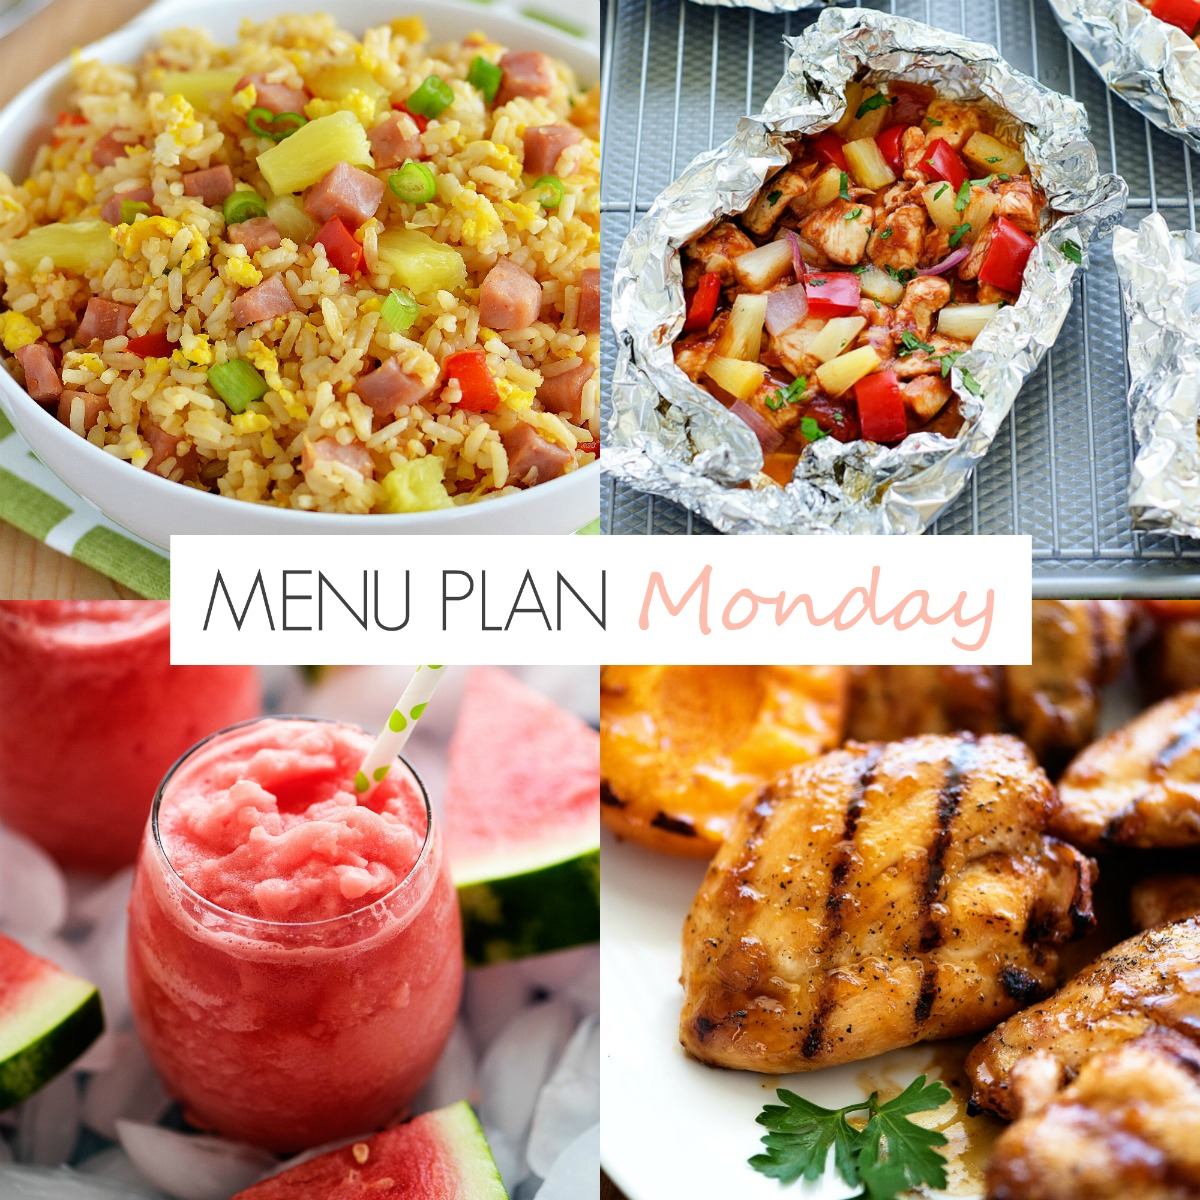 Lots of great family-friendly recipes always on Menu Plan Monday!